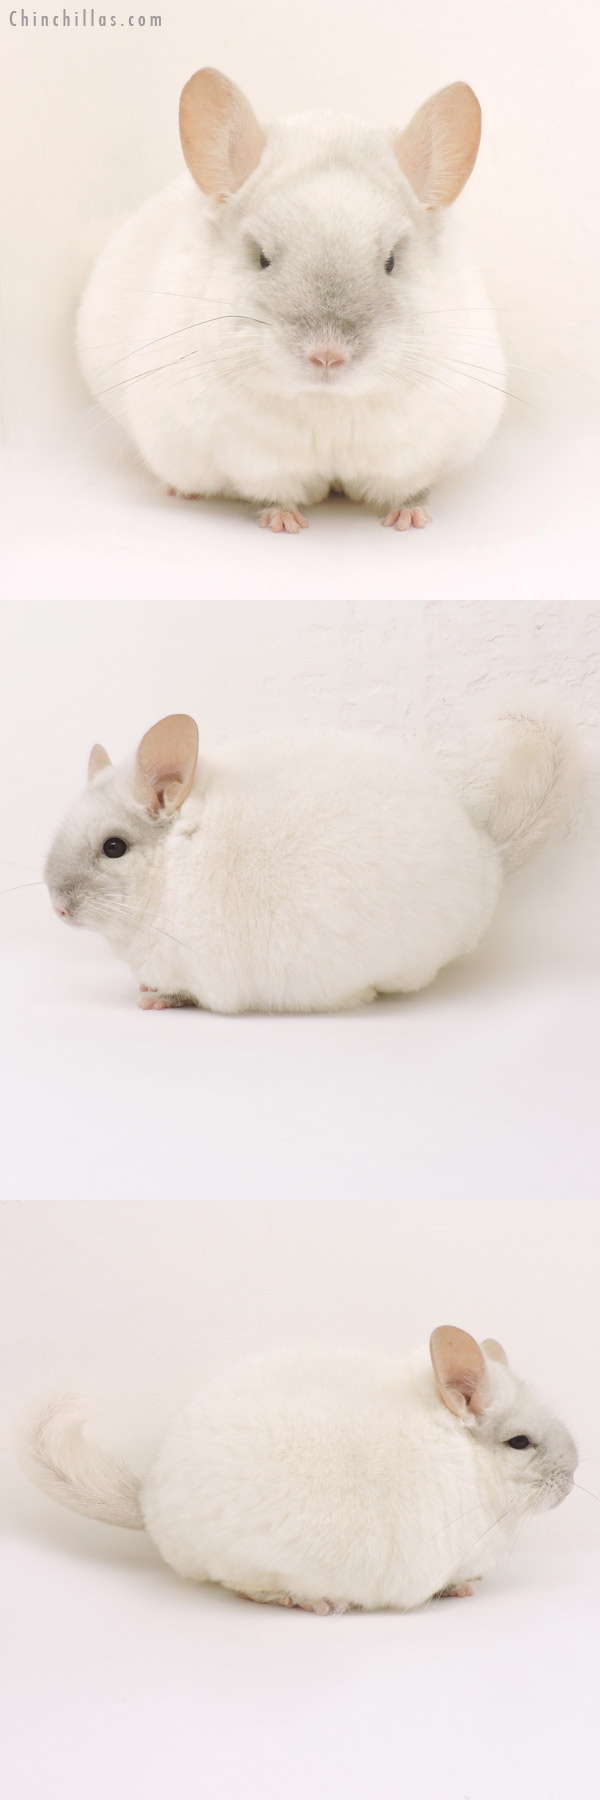 14180 Large Blocky Section Champion Pink White Male Chinchilla